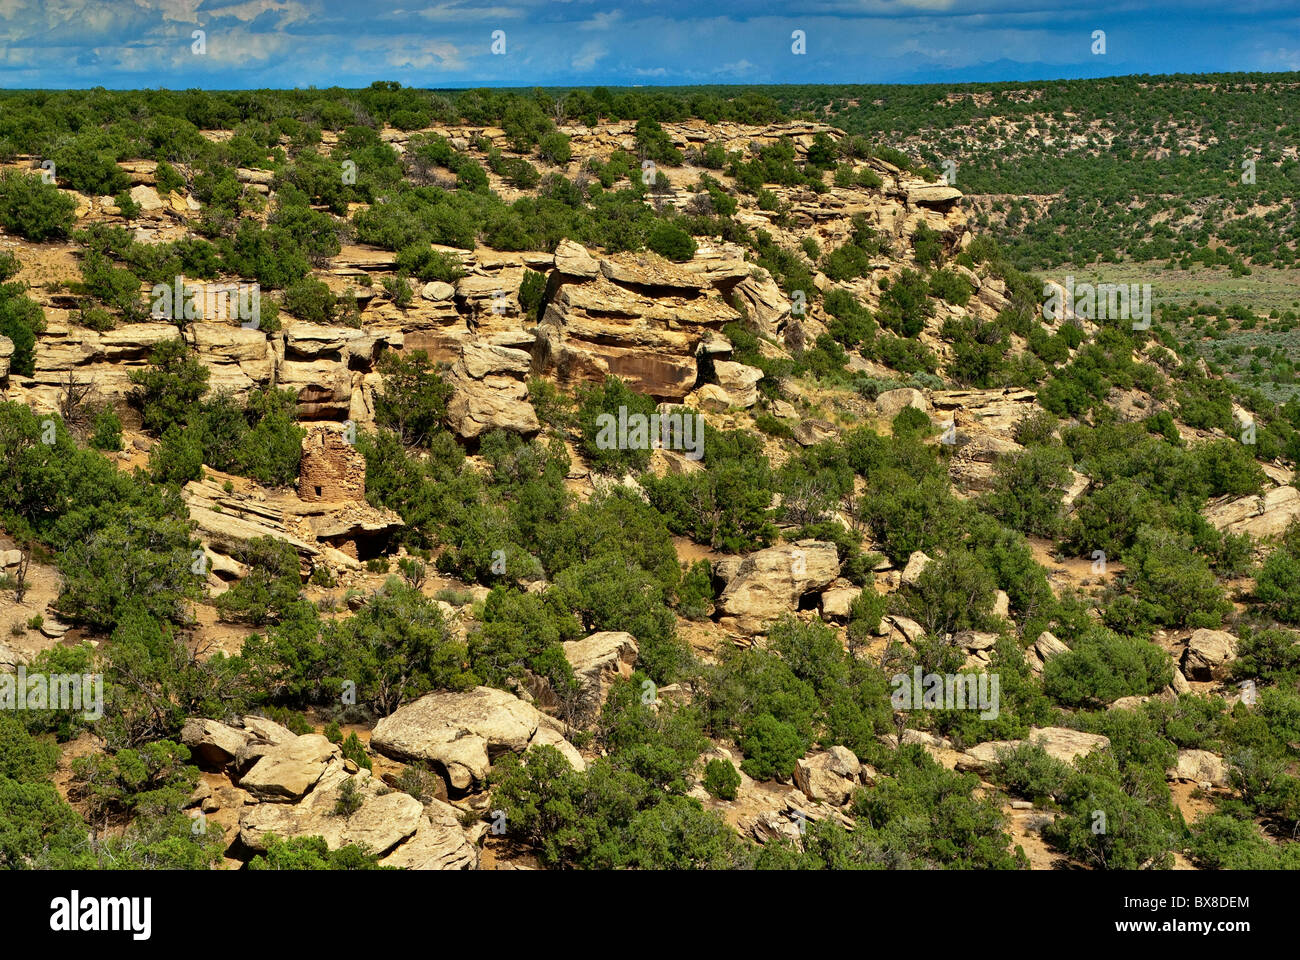 Distant view of Anasazi ruins at Painted Hand Pueblo at Canyons of the Ancients National Monument, Colorado, USA - Stock Image